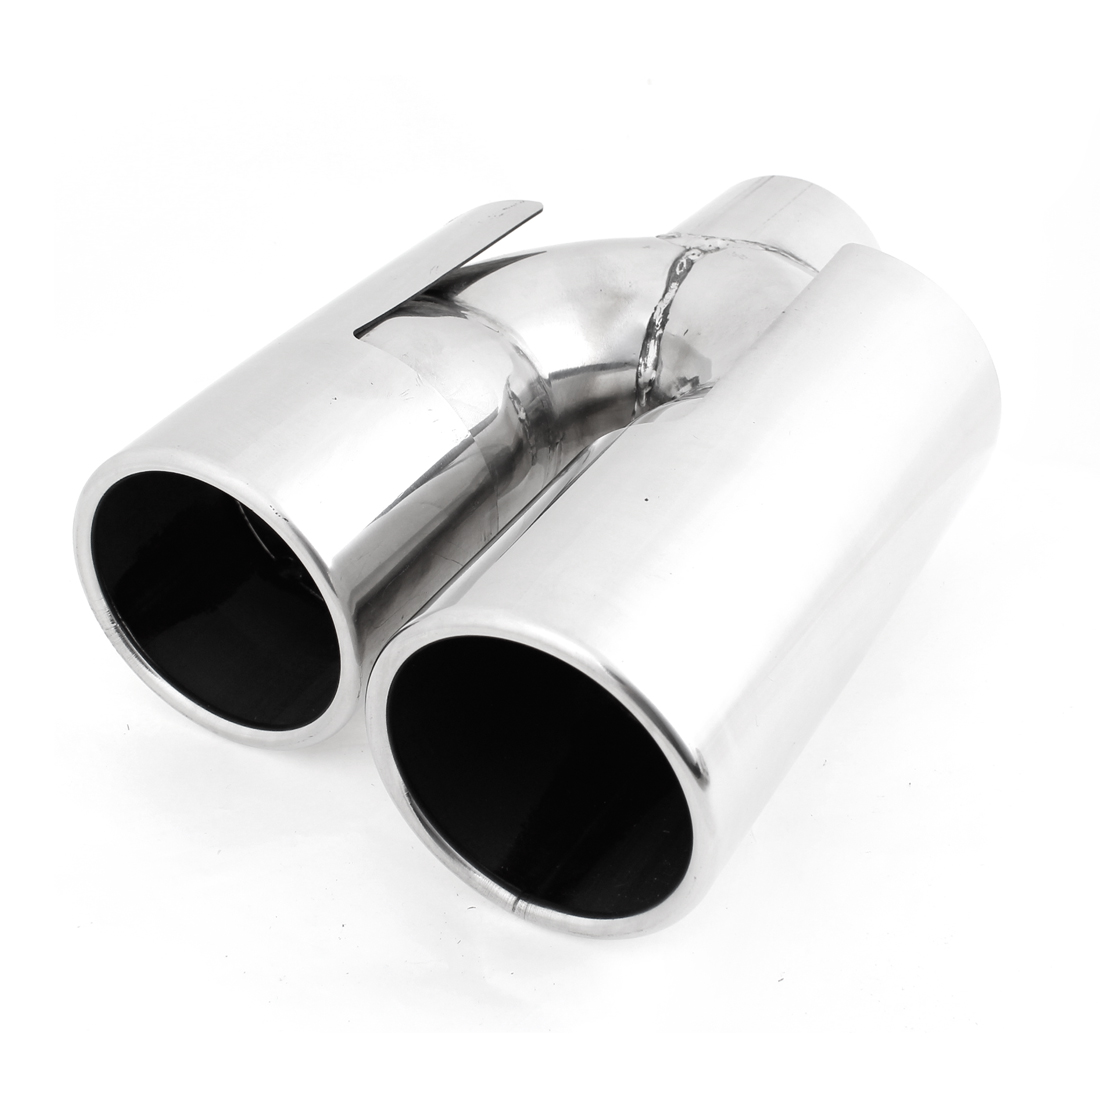 "2.4"" Inlet 2.2"" Outlet Dual Stainless Steel Exhaust Muffler Tip for BMWX1"